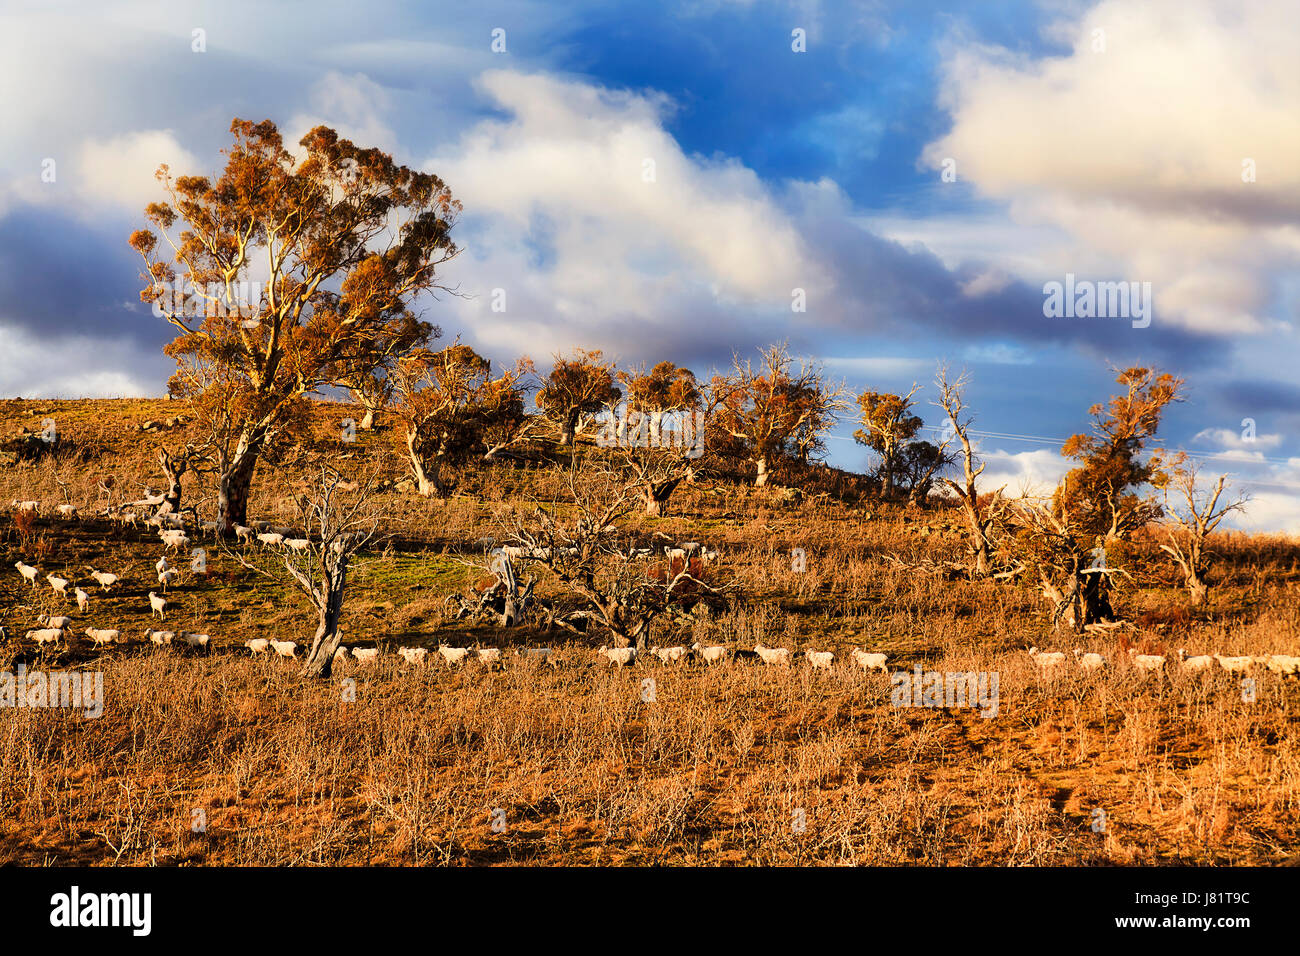 A horde of merino wool sheep grazing in hills agriculture farm in Thredbo valley of Snowy Mountains during dry and - Stock Image